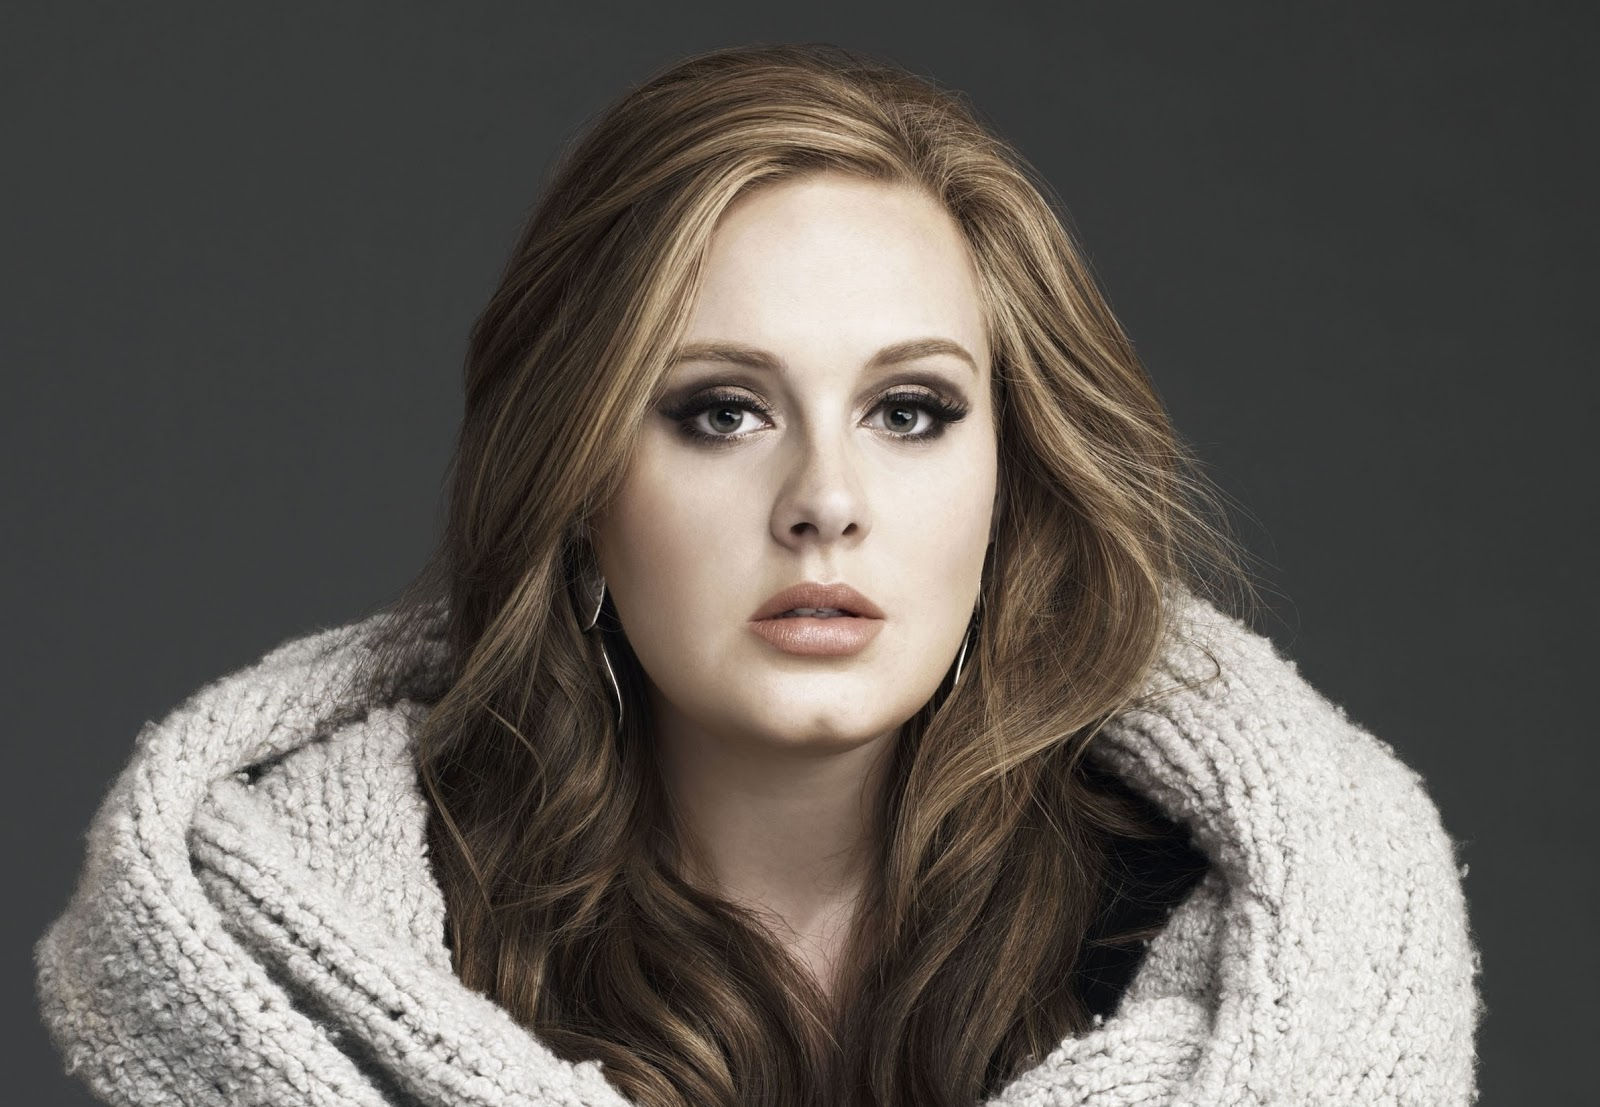 Entertainment: Adele